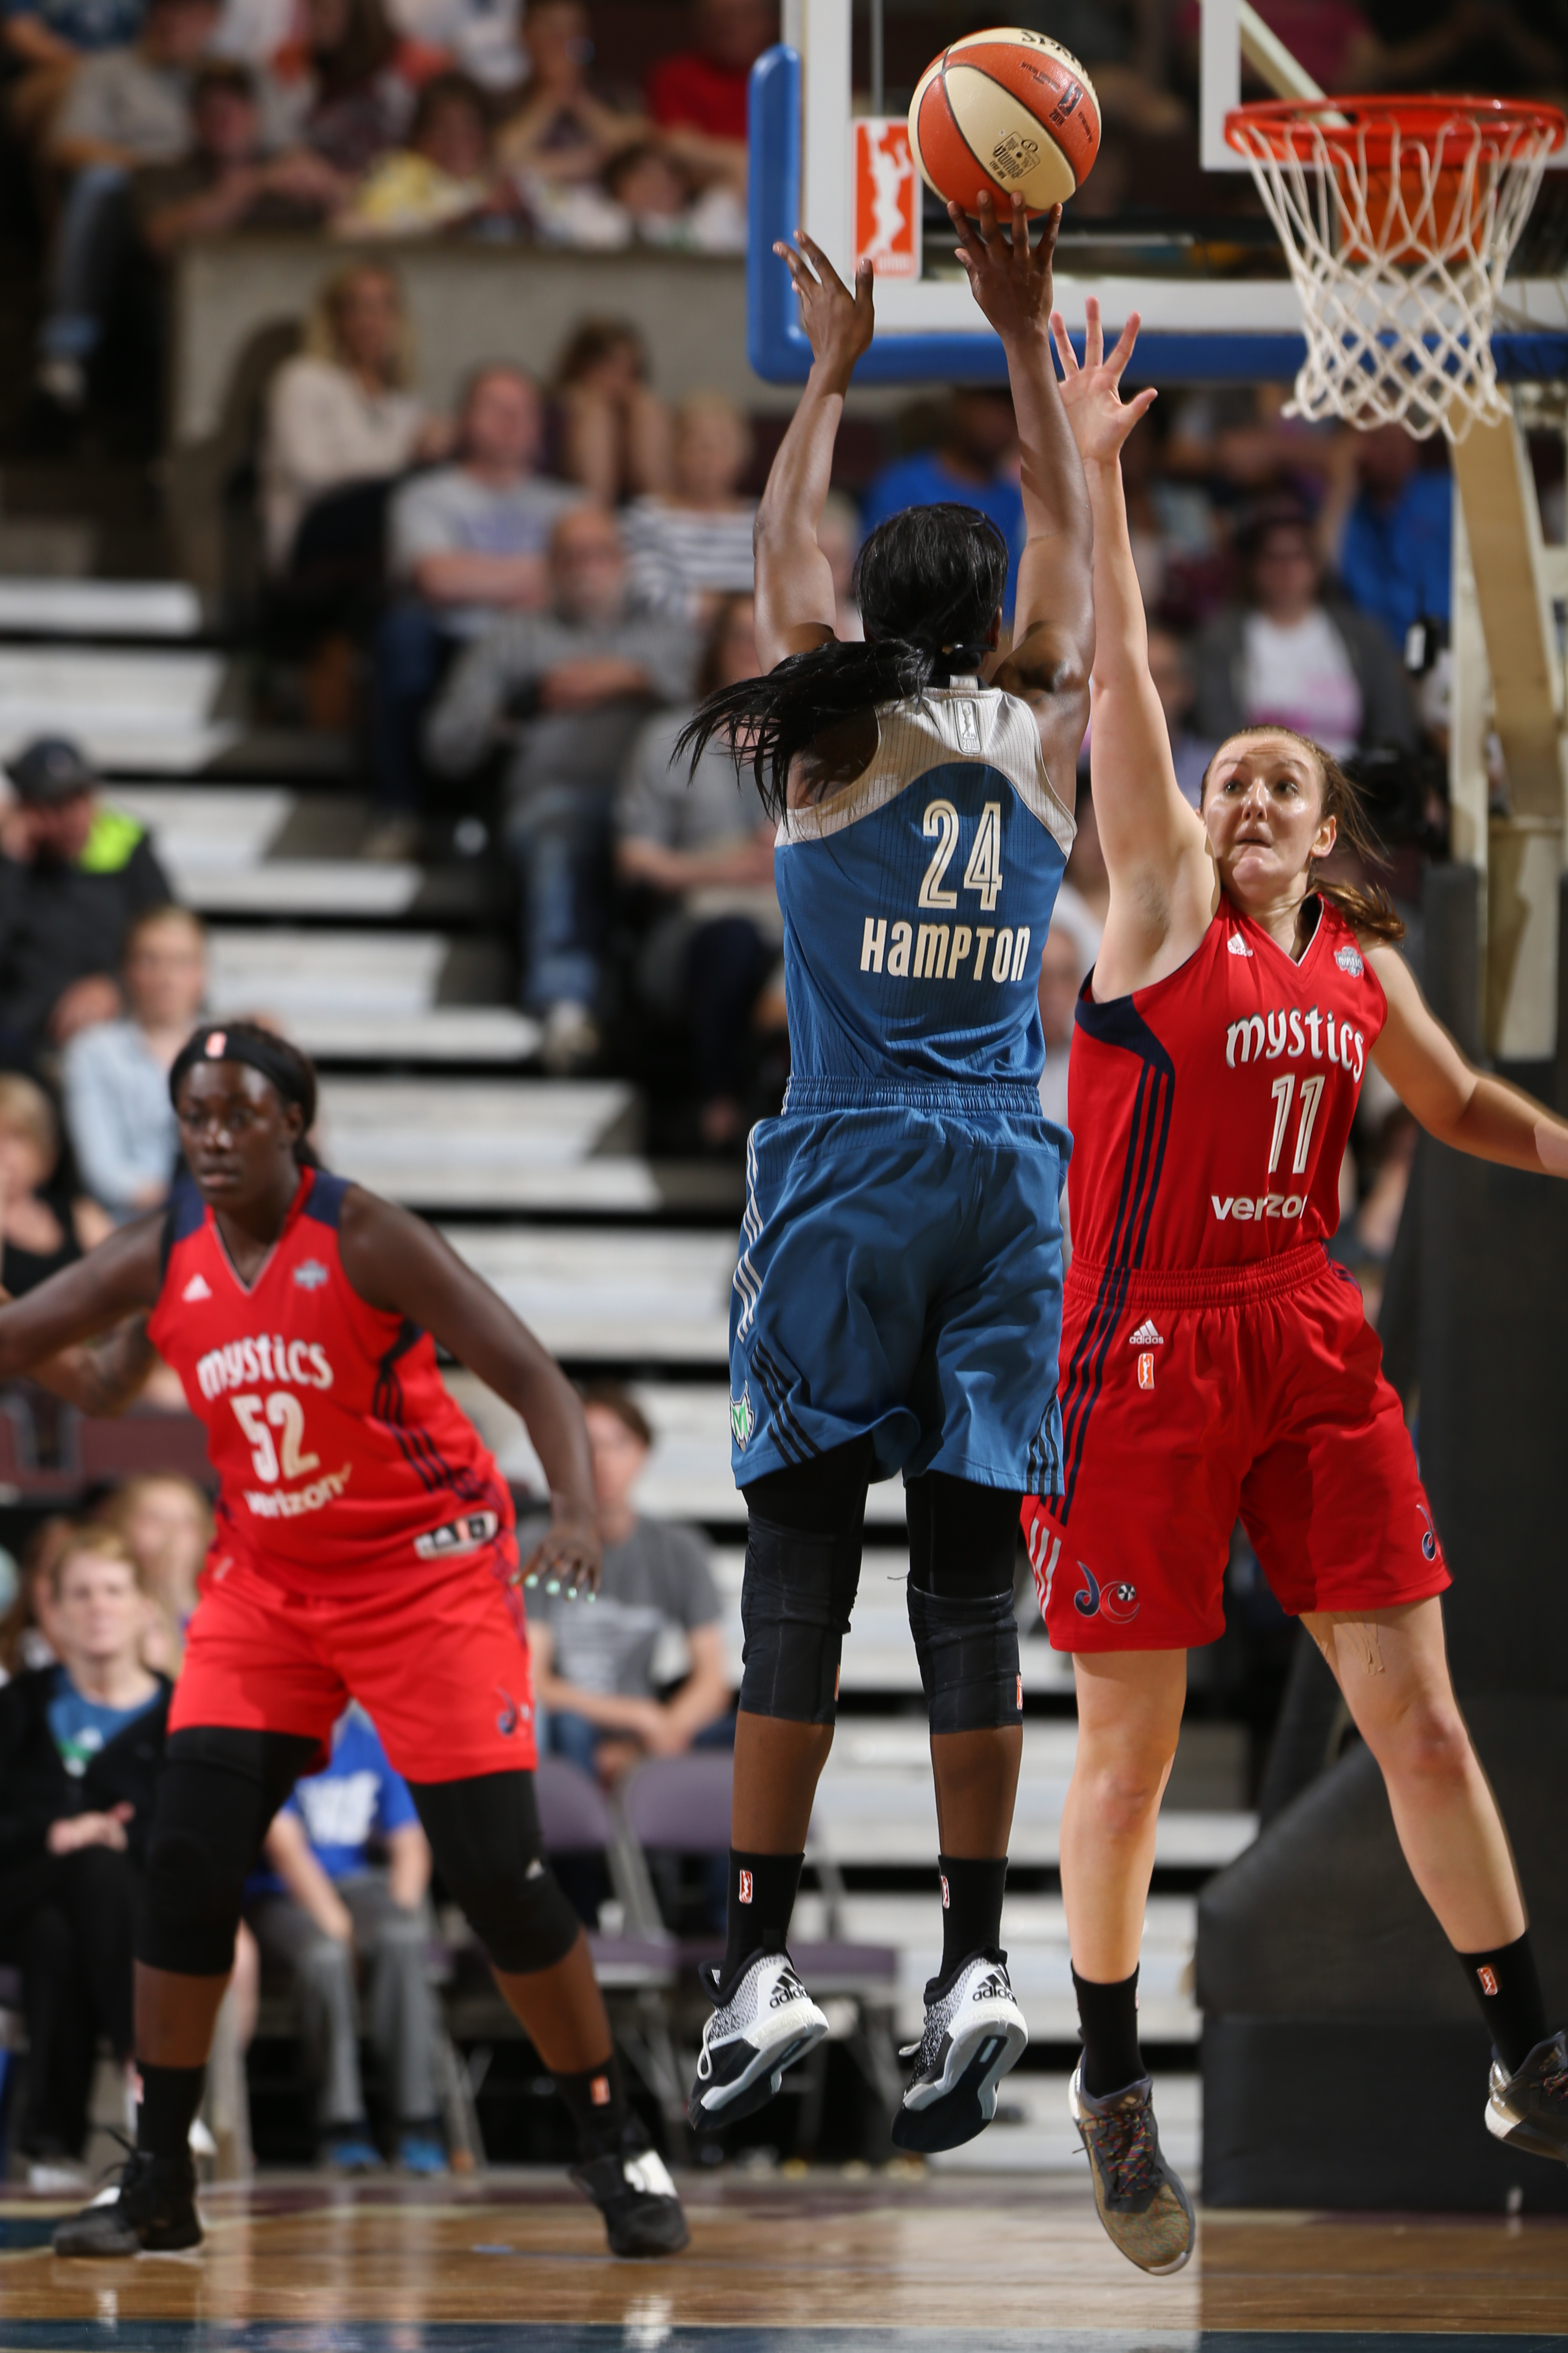 ROCHESTER, MN - MAY 8: Keisha Hampton #24 of the Minnesota Lynx shoots the basketball against Ally Malott #11 of the Washington Mystics during the preseason game on May 8, 2016 at the Mayo Civic Center in Rochester, Minnesota. NOTE TO USER: User expressly acknowledges and agrees that, by downloading and or using this Photograph, user is consenting to the terms and conditions of the Getty Images License Agreement. Mandatory Copyright Notice: Copyright 2016 NBAE (Photo by David Sherman/NBAE via Getty Images)